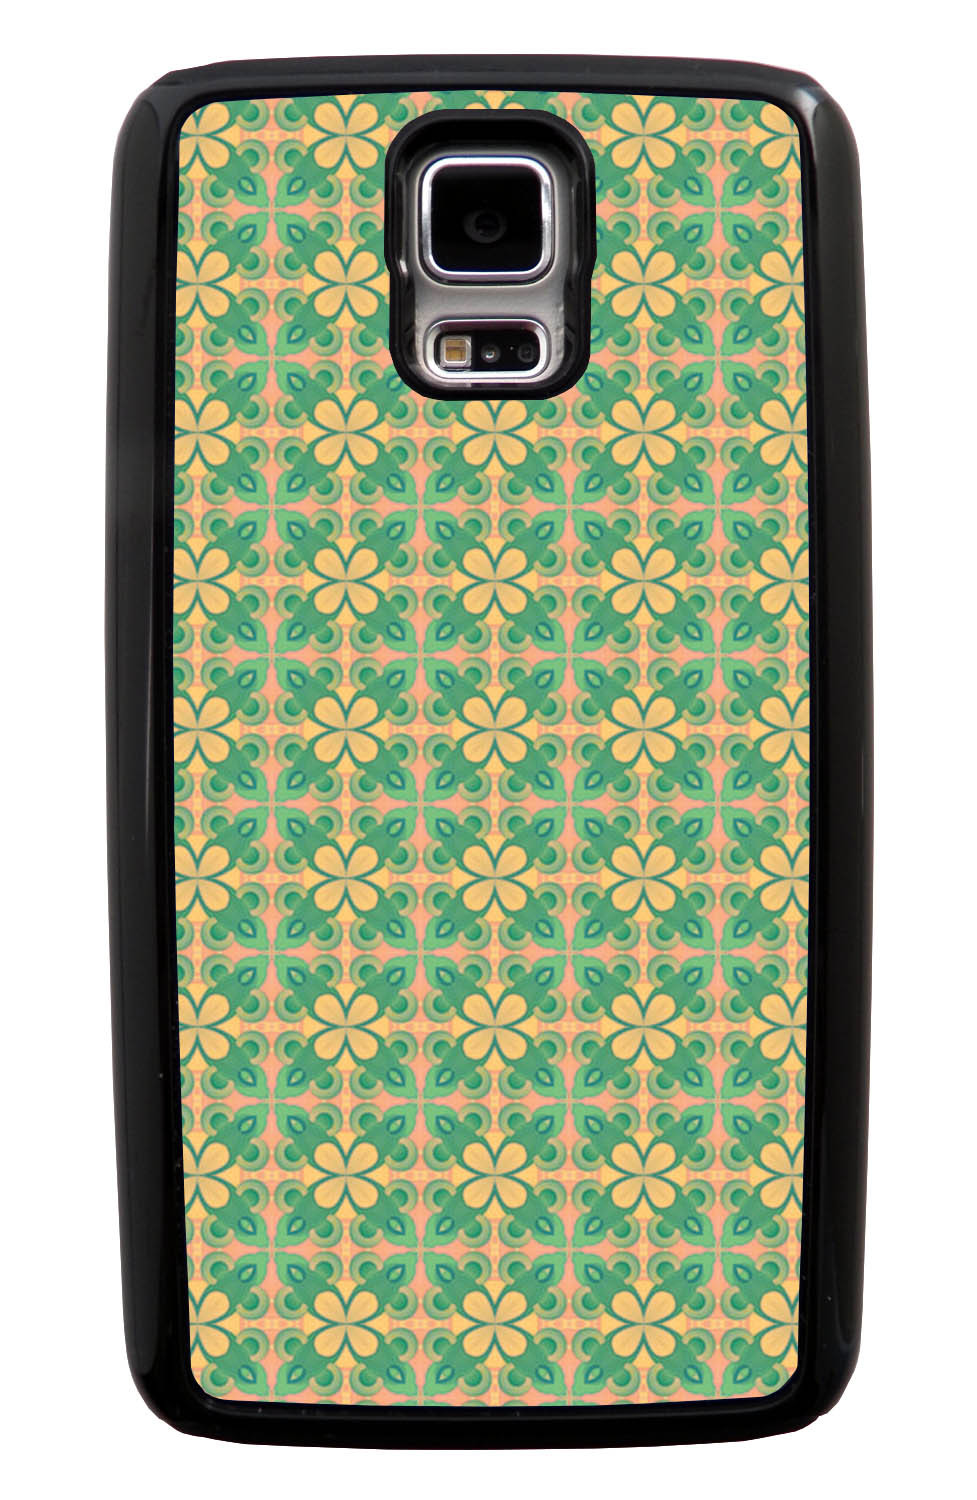 Samsung Galaxy S5 / SV Abstract Case - Green and Yellow - Flower Petal Like - Black Tough Hybrid Case